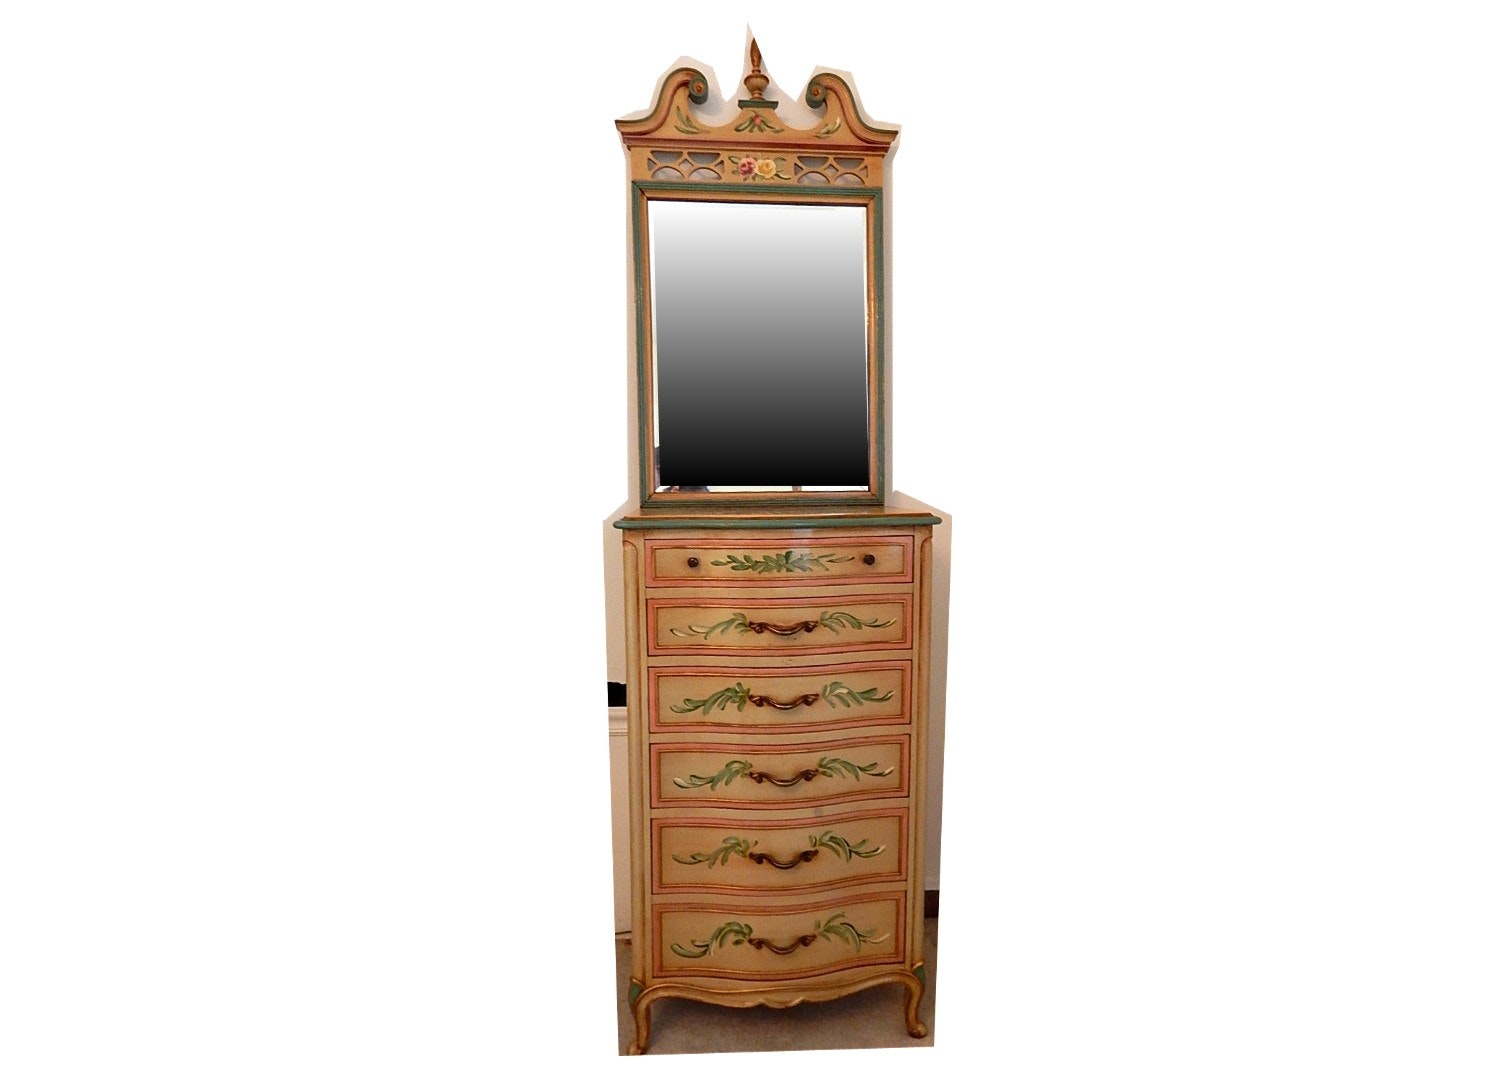 Drexel Shabby Chic Chest of Drawers and Mirror